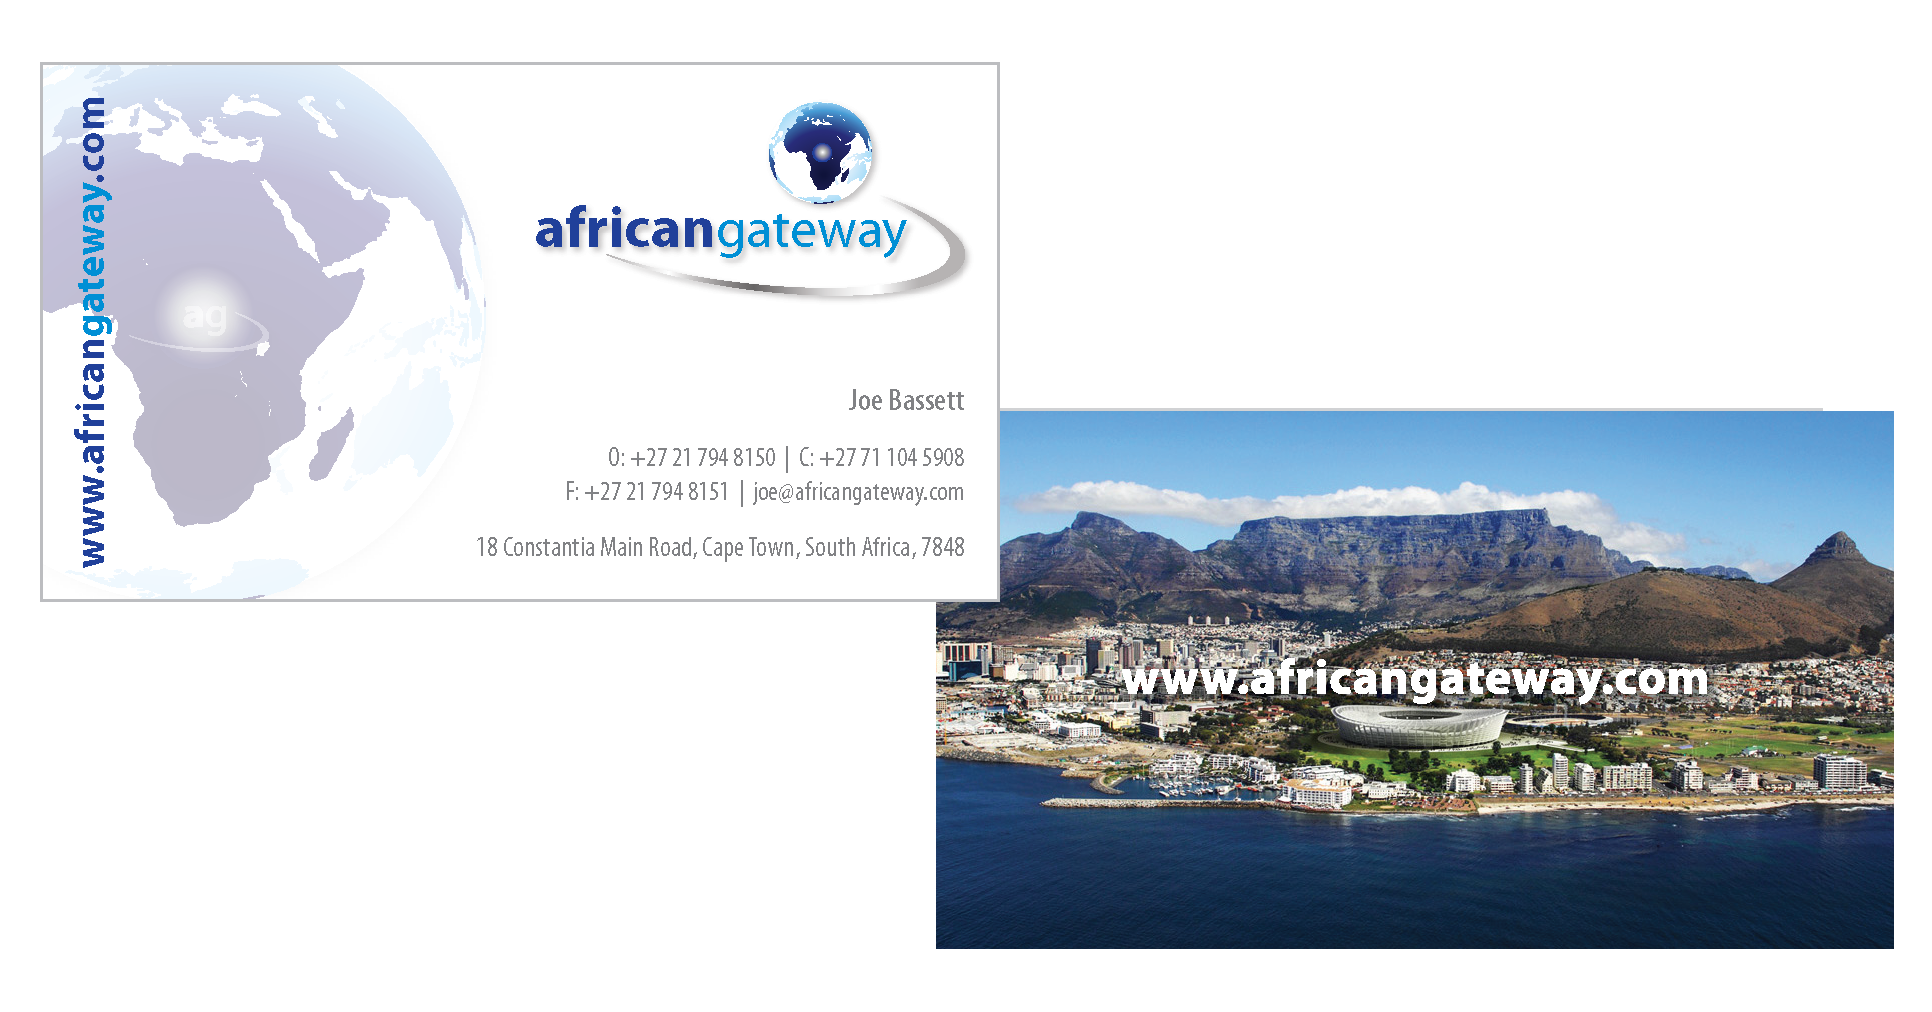 Business Card Design for African Gateway